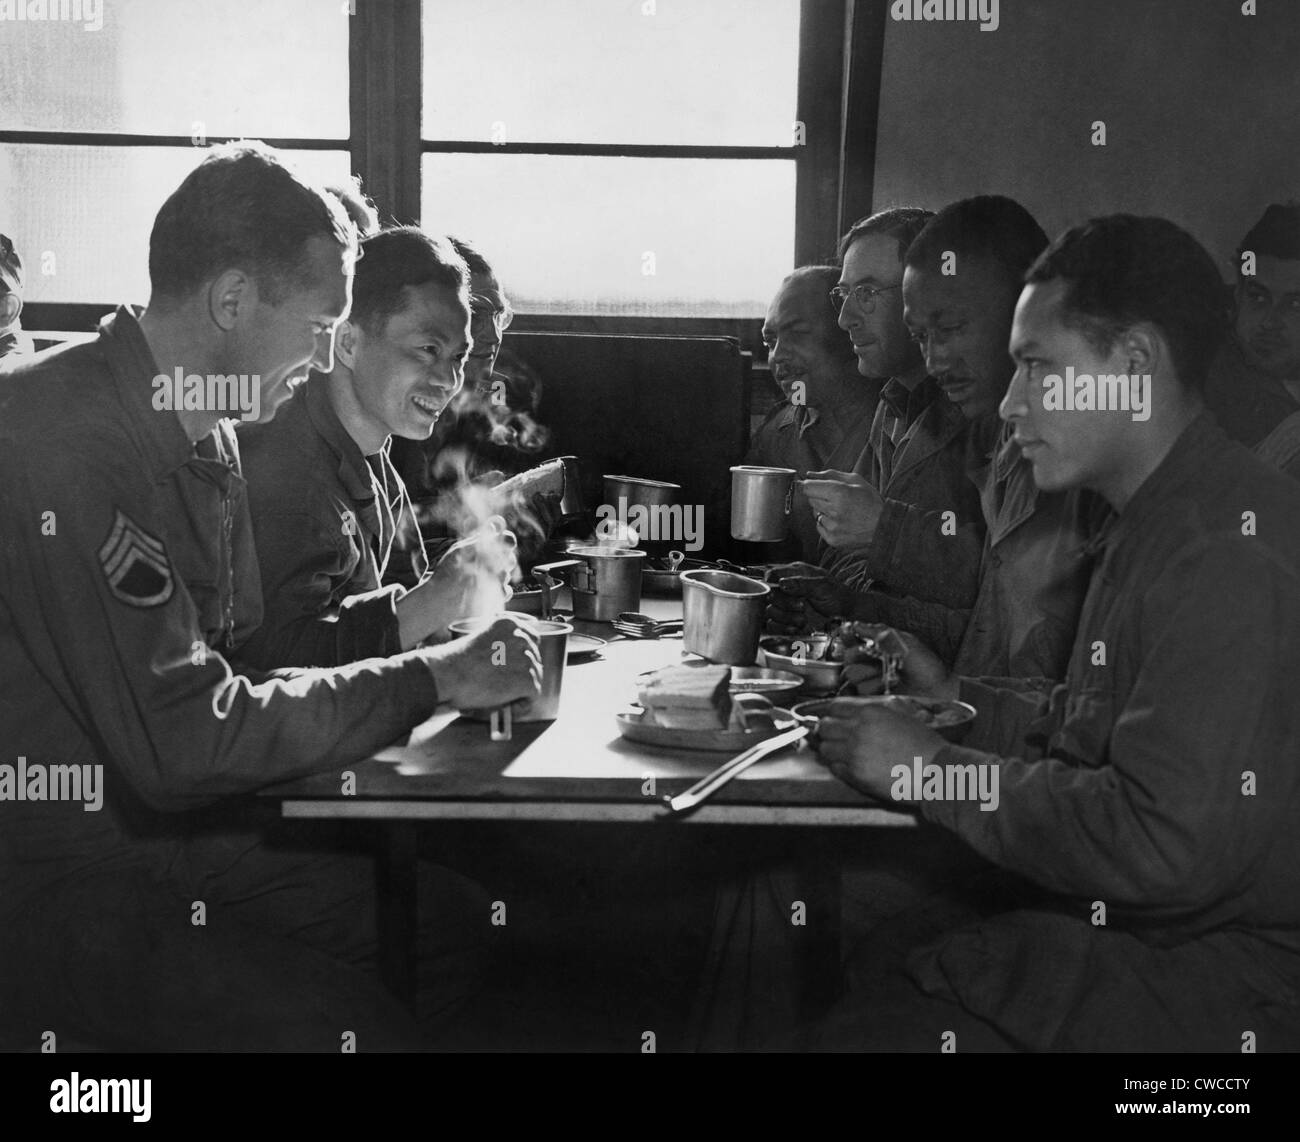 African American, Chinese, Puerto Rican, and White US soldiers eating together in a mess hall. They are all serving - Stock Image